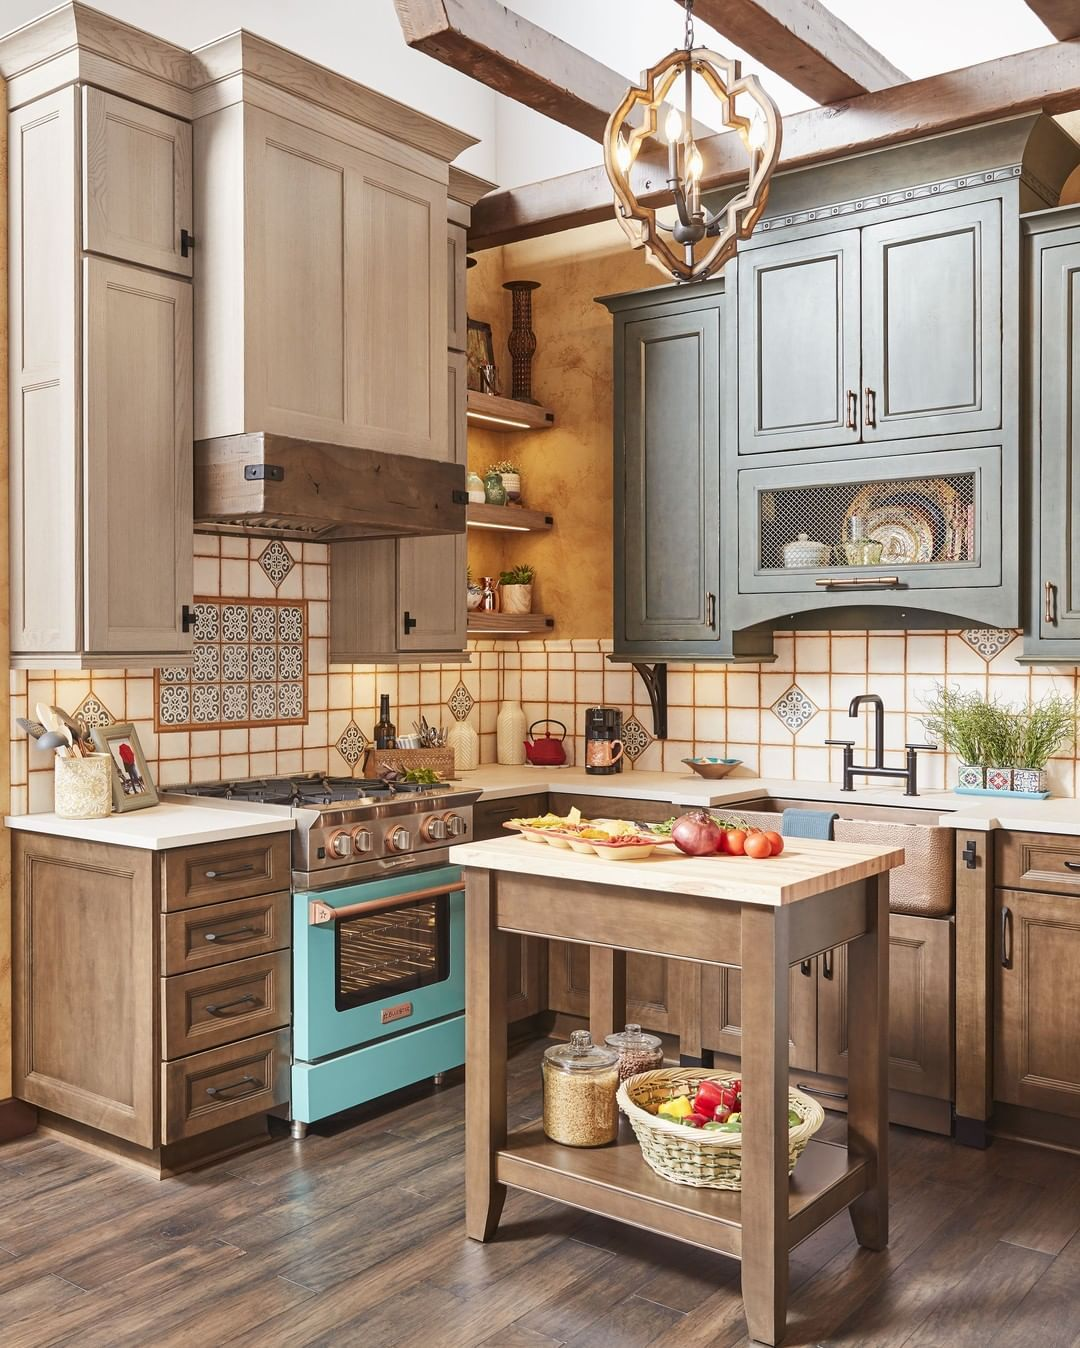 Wellborn Cabinet On Instagram Join Wellborn Cabinet Inc Booth N2905 As Our 90 X50 Ex In 2020 Kitchen Inspirations Modern Kitchen Set Kitchen Cabinet Inspiration